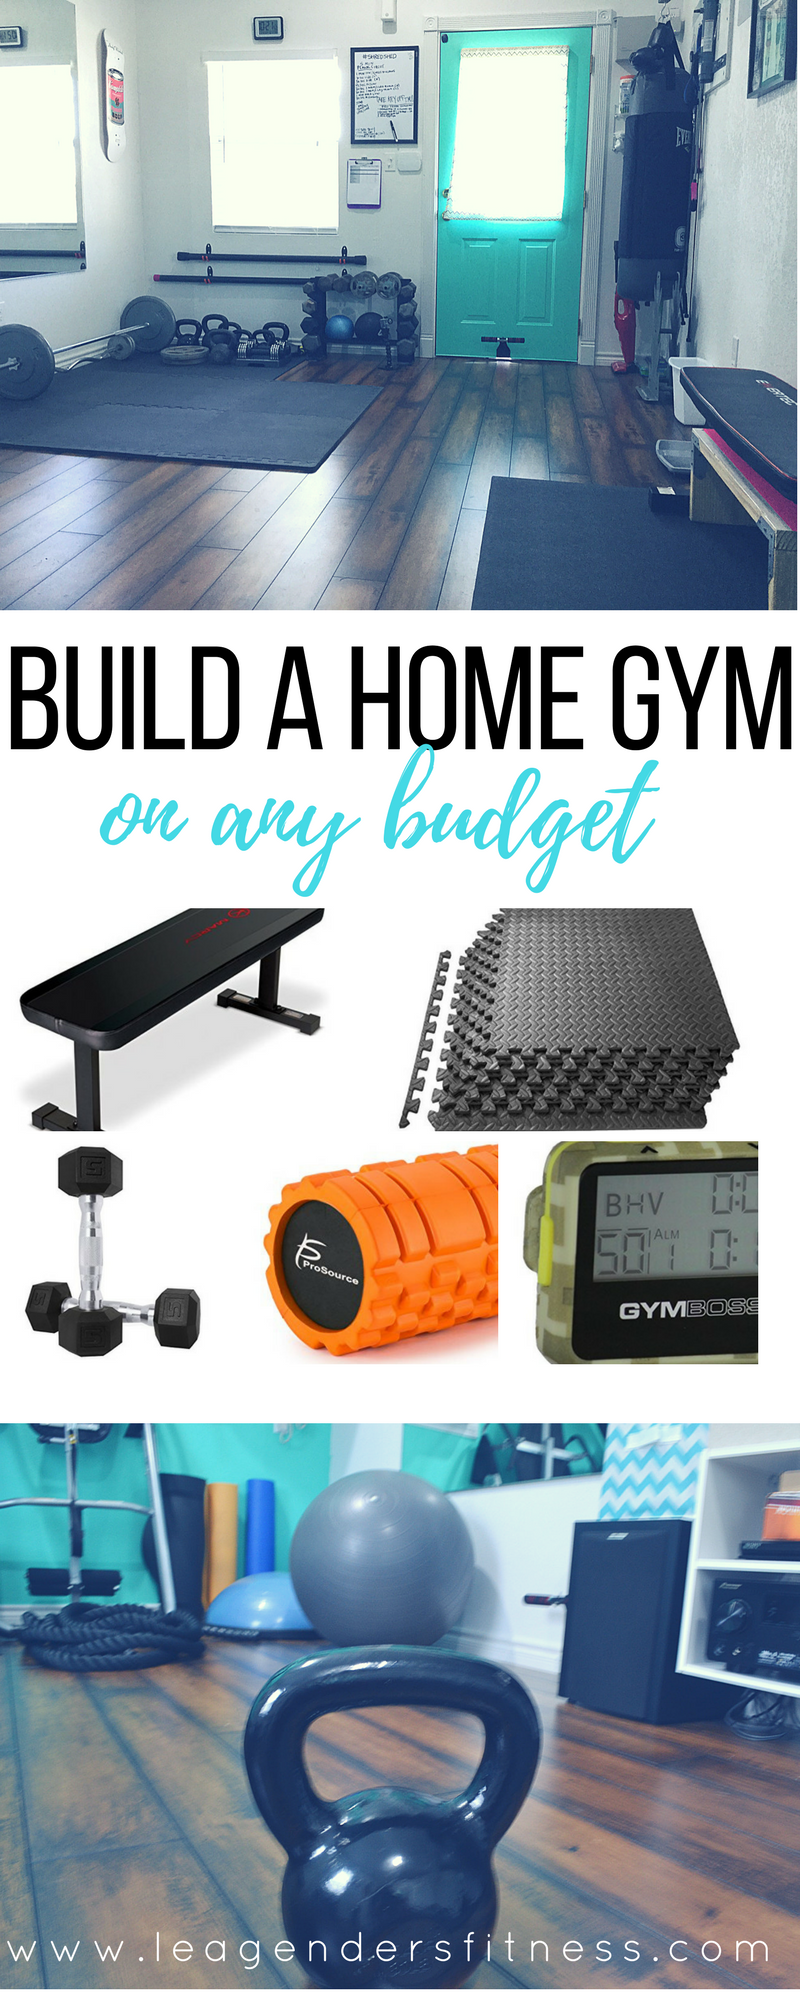 Outdoor home gym ideas u dnrlk